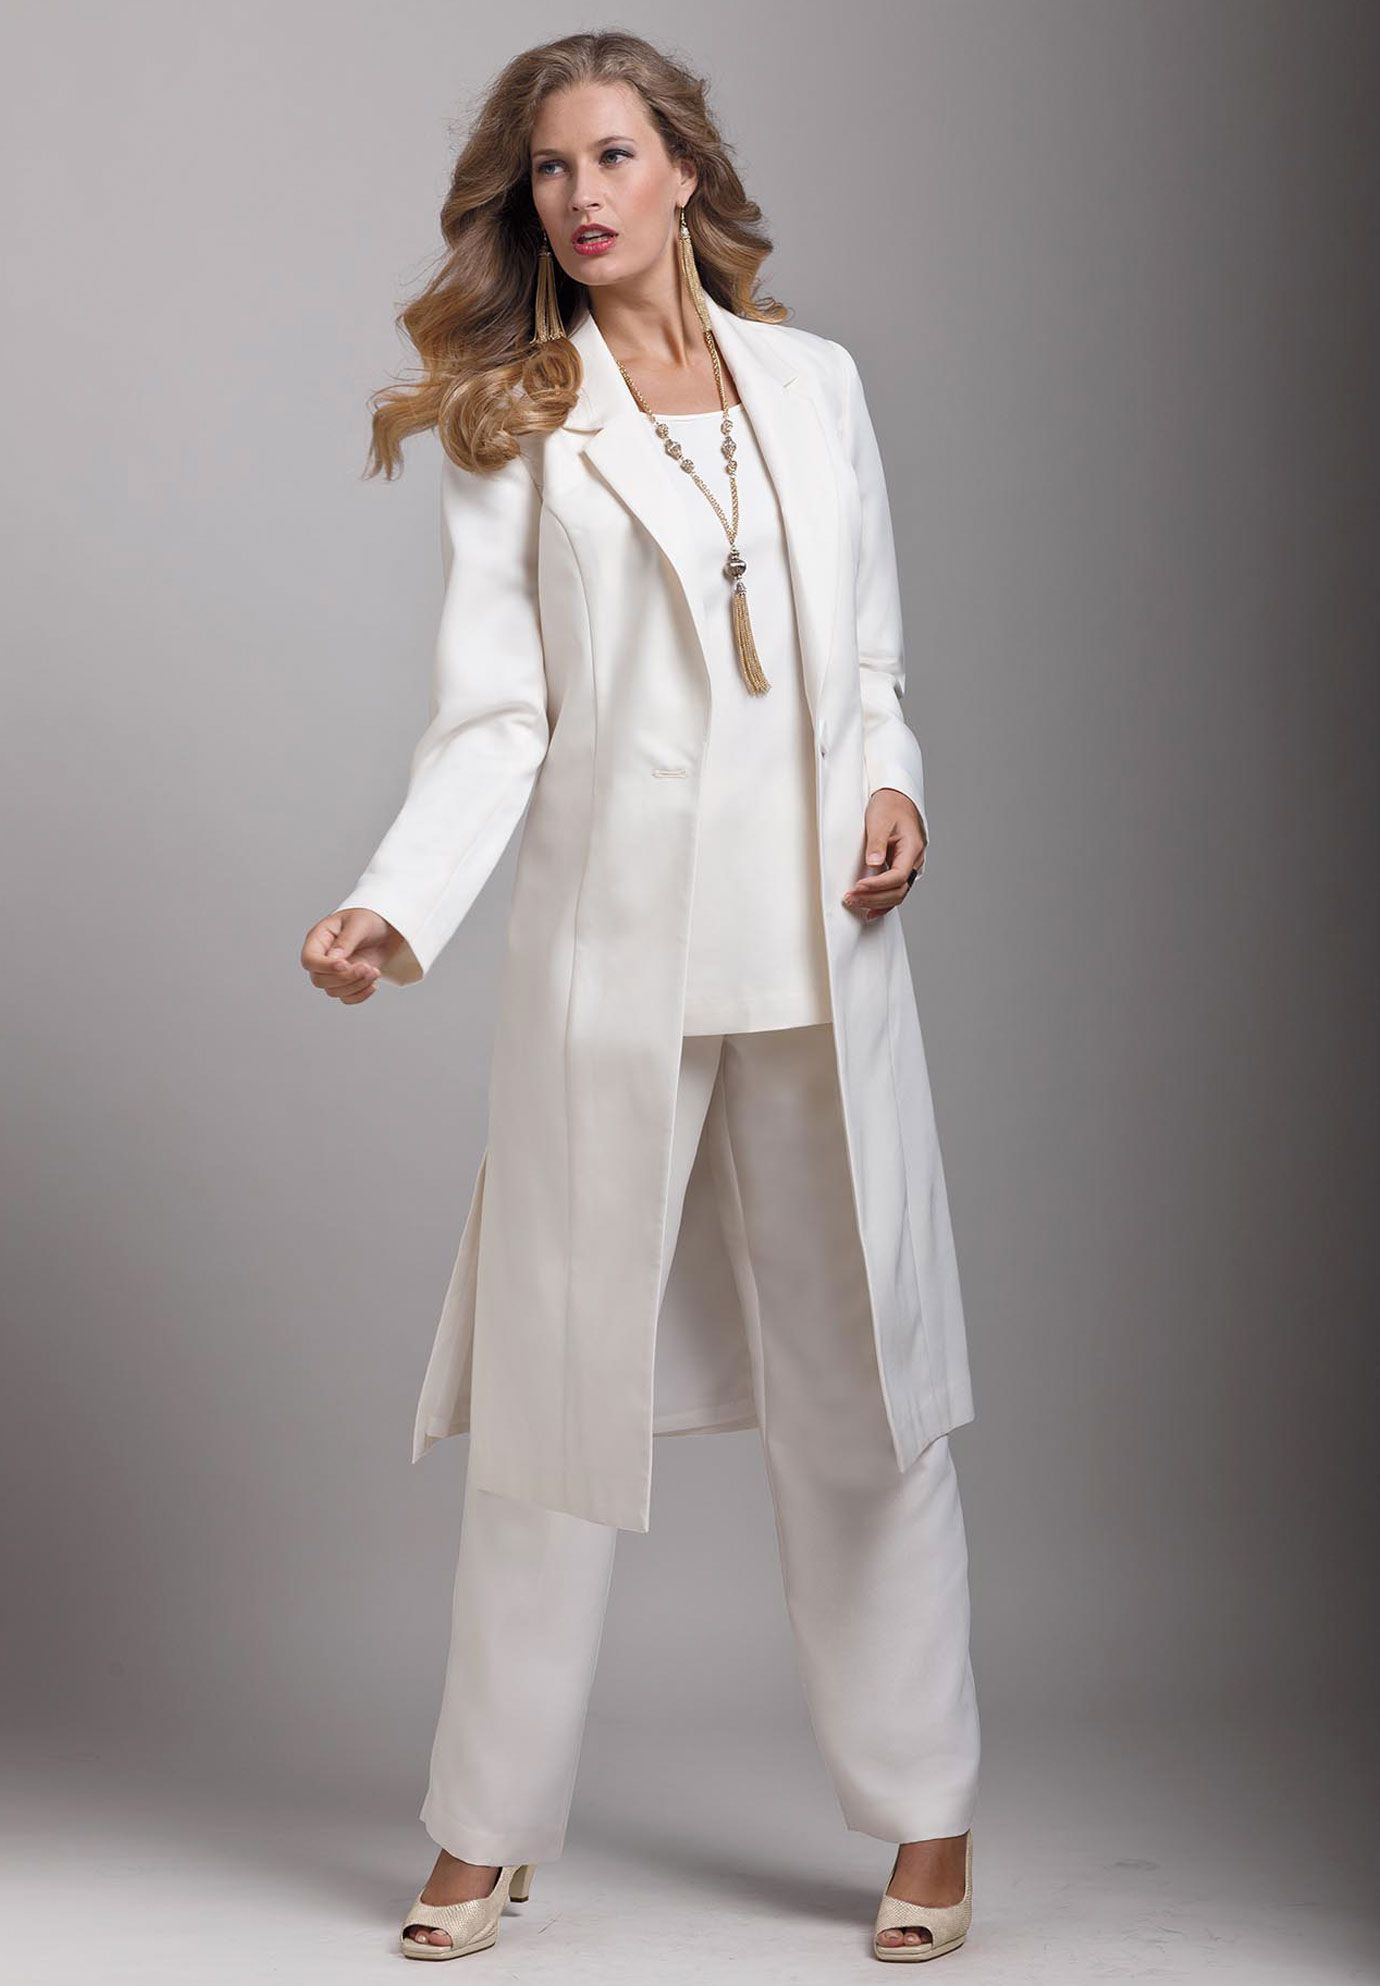 Plus Size Three Piece Duster Pant Suit Image Wedding